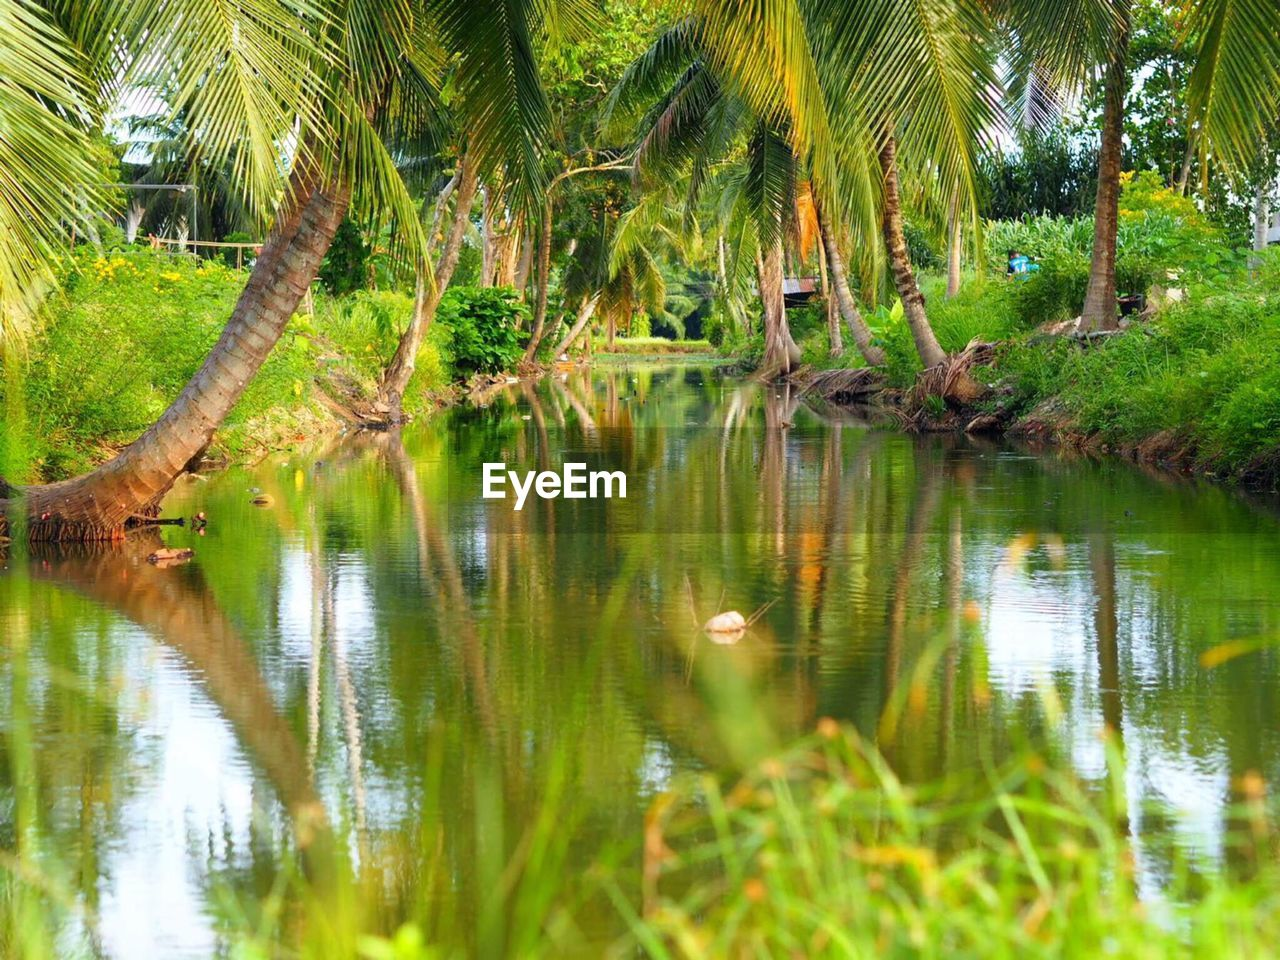 reflection, tree, plant, water, tranquility, tranquil scene, tropical climate, green color, scenics - nature, beauty in nature, palm tree, lake, nature, growth, no people, land, forest, day, non-urban scene, outdoors, coconut palm tree, rainforest